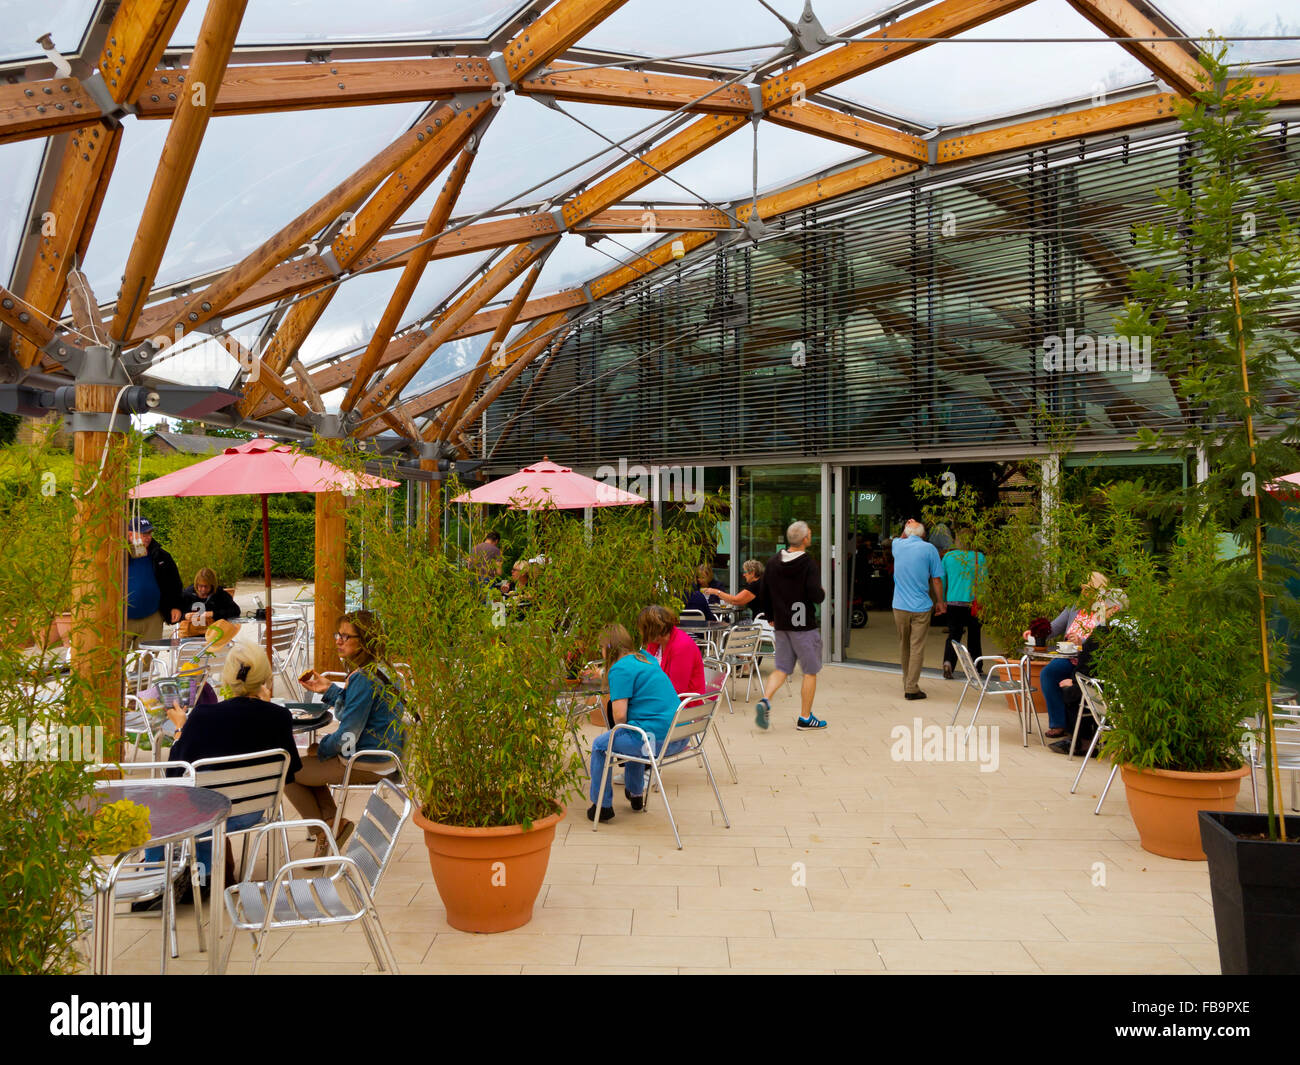 The cafe at Alnwick Gardens in Northumberland England UK designed by Jacques and Peter Wirtz - Stock Image